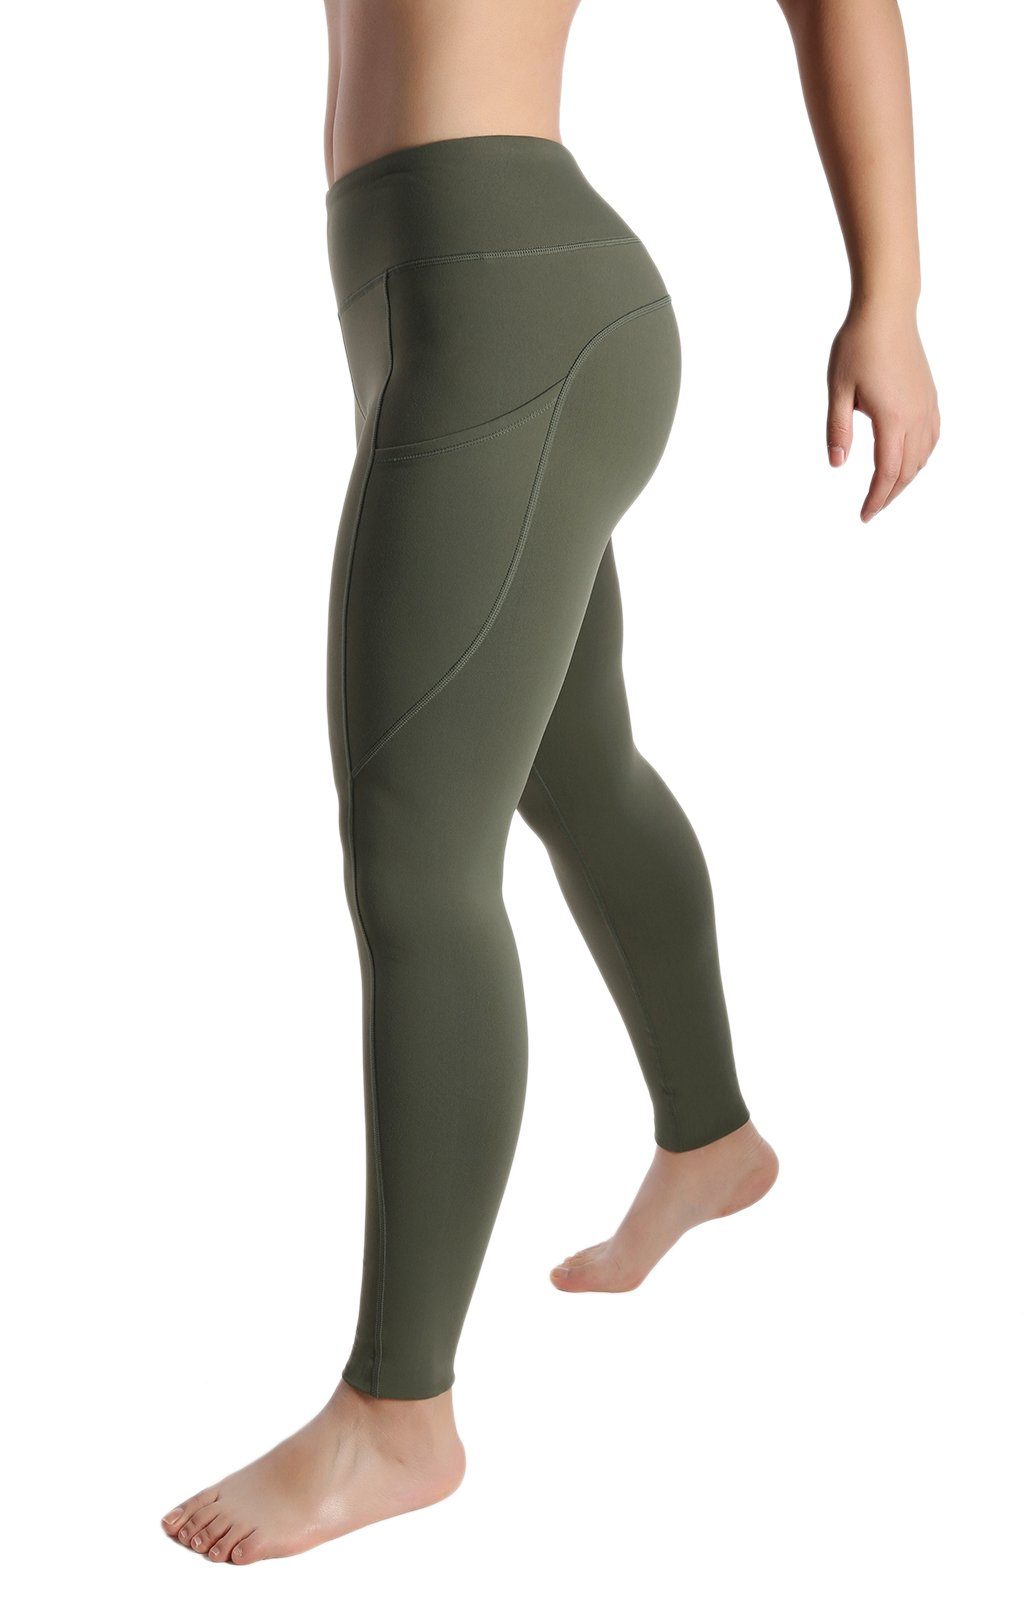 a97050ddadff9 Womens Out Side Pocket Wod Capris Compression Pants Yoga Workout Leggings  Full Sizes product image